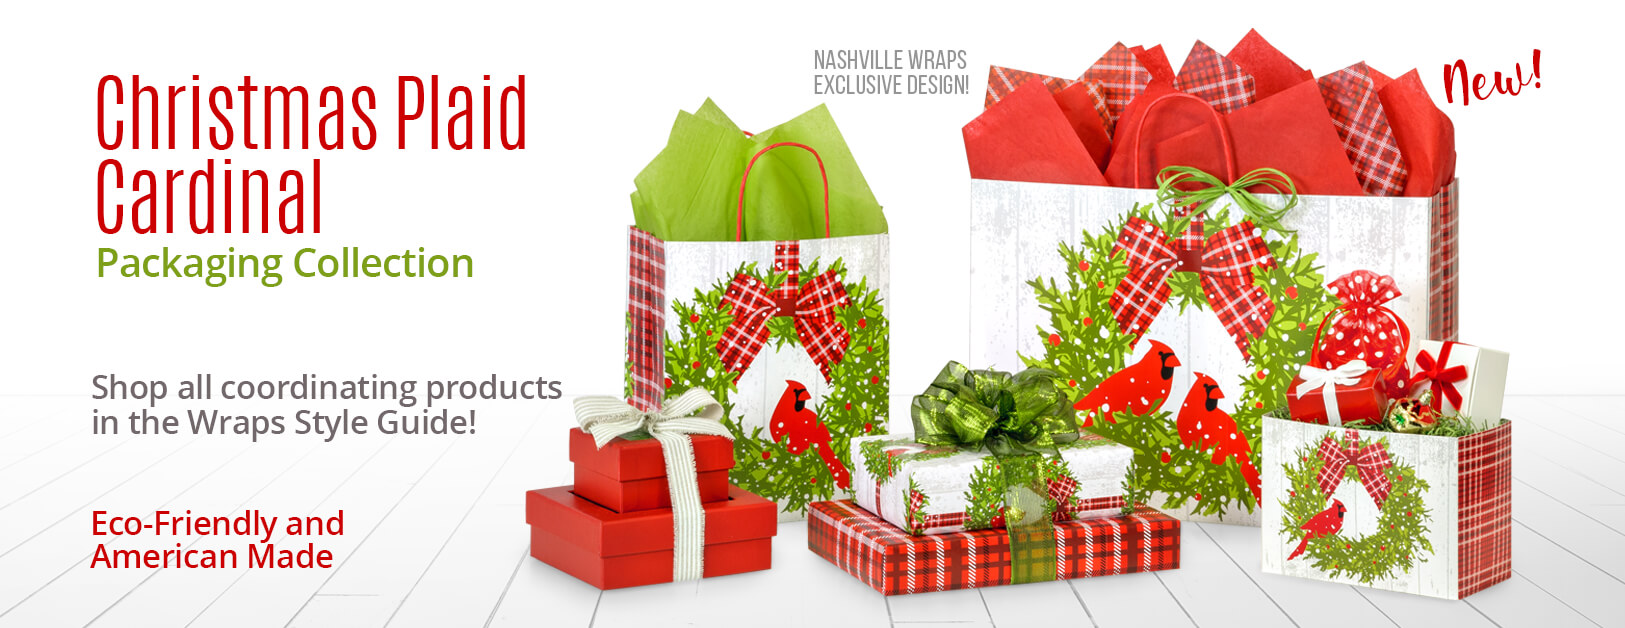 Christmas Plaid Cardinal Packaging Collection  from Nashville Wraps